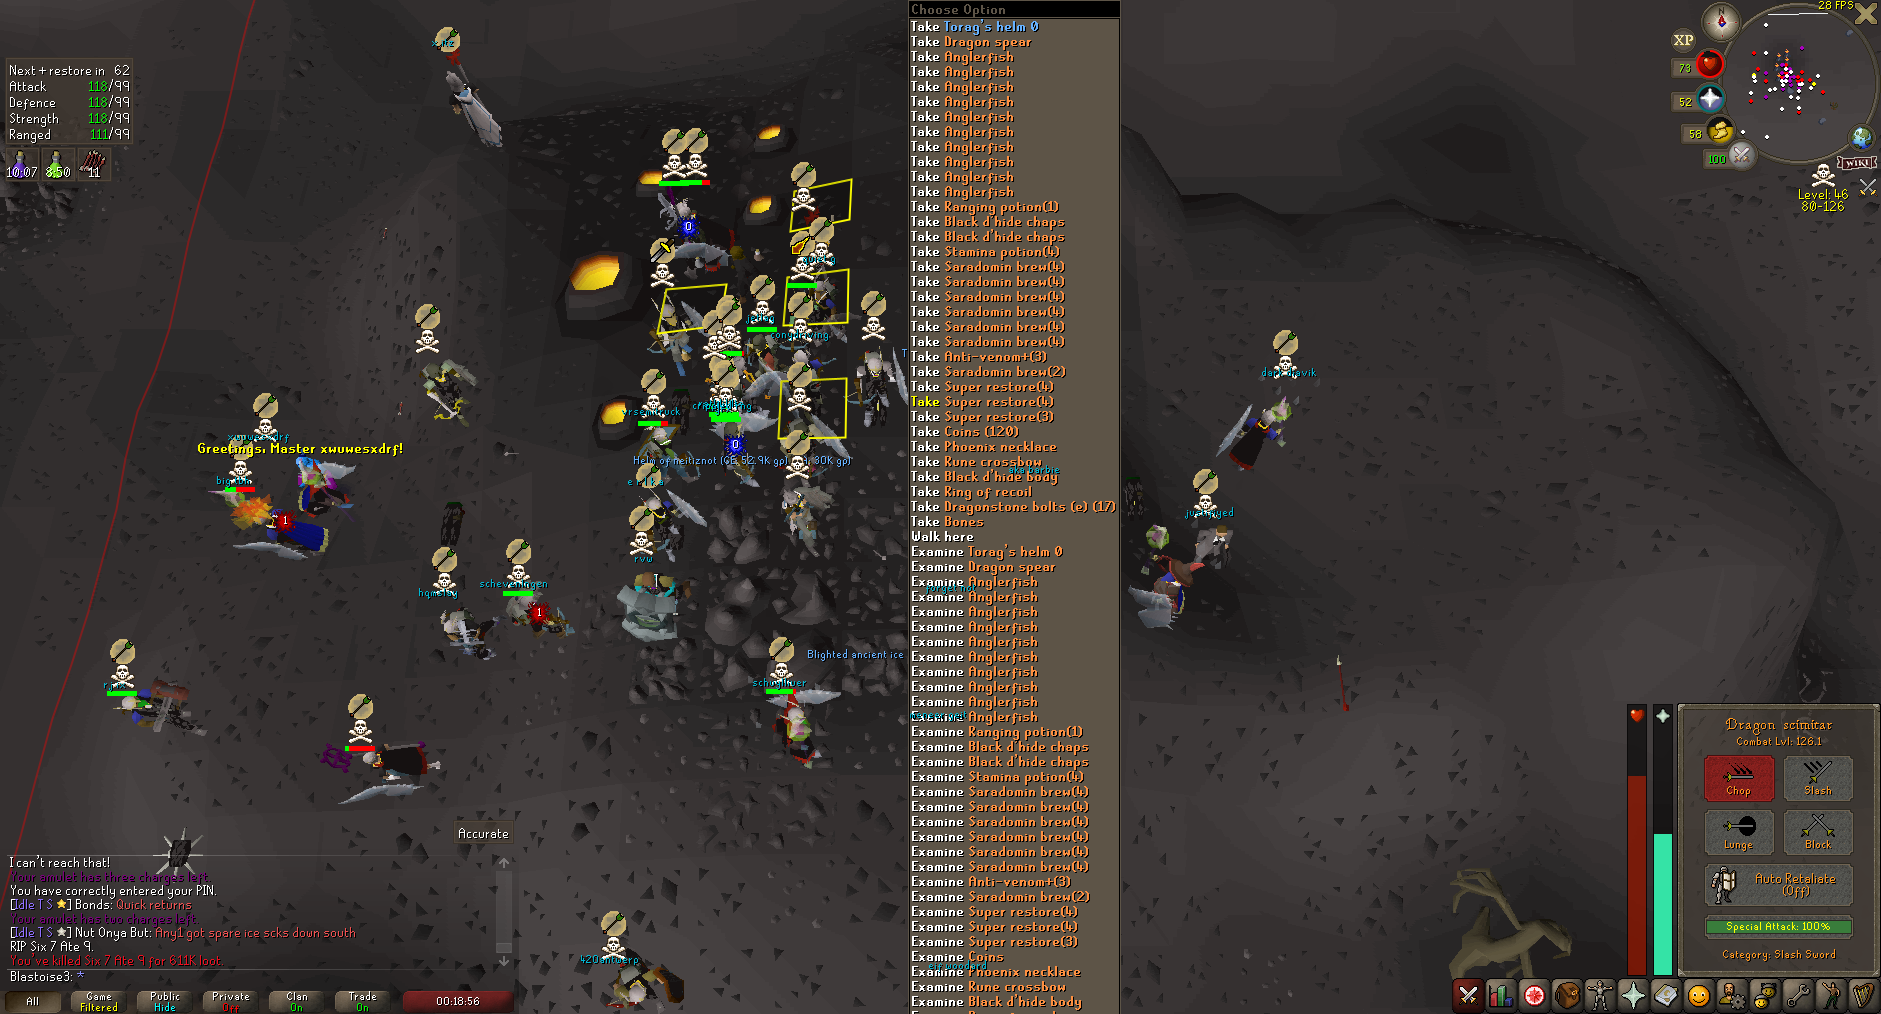 OpenOSRS_s2H2xmBkub.png